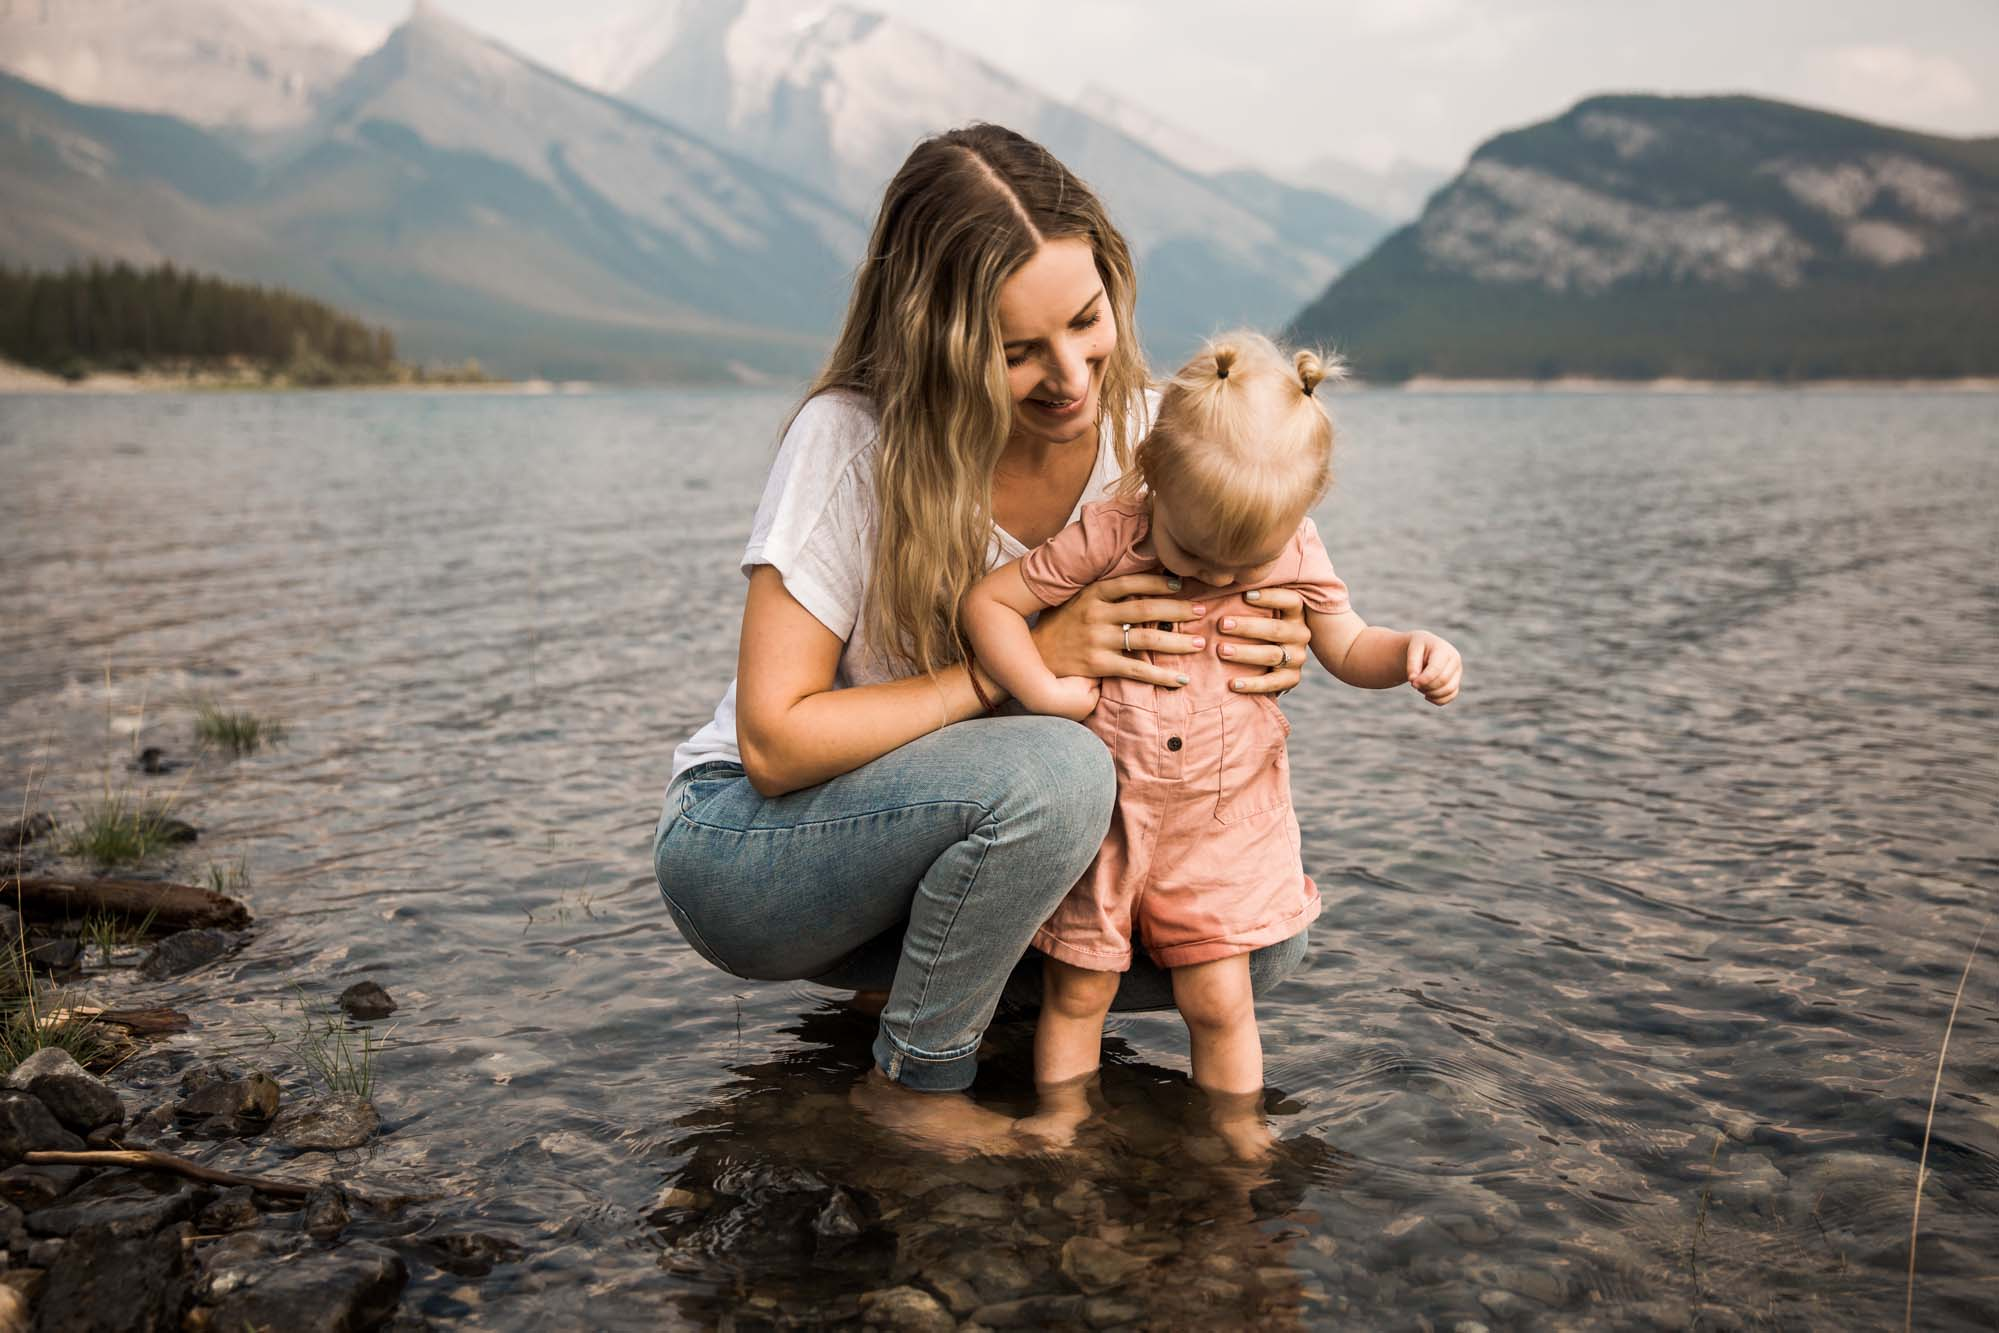 Calgary lifestyle family photographer, family photos by the water at sunset in Kananaskis Country